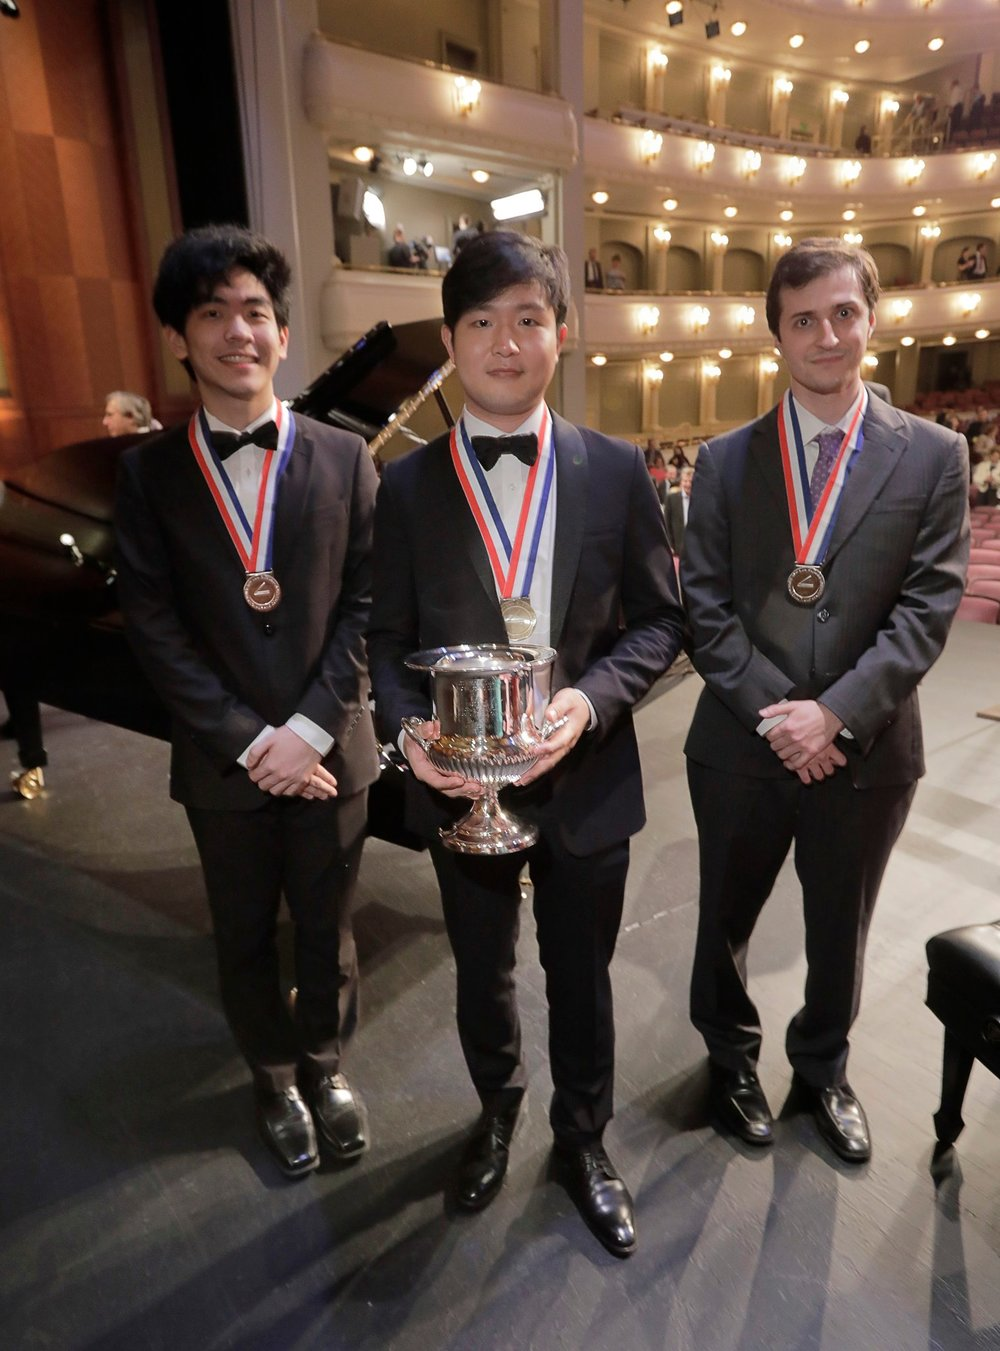 The Cliburn winner, Yekwon Sunwoo, center, with the bronze medalist Daniel Hsu, left, of San Francisco, and the silver medalist Kenneth Broberg, right, of Minneapolis. Credit Ralph Lauer